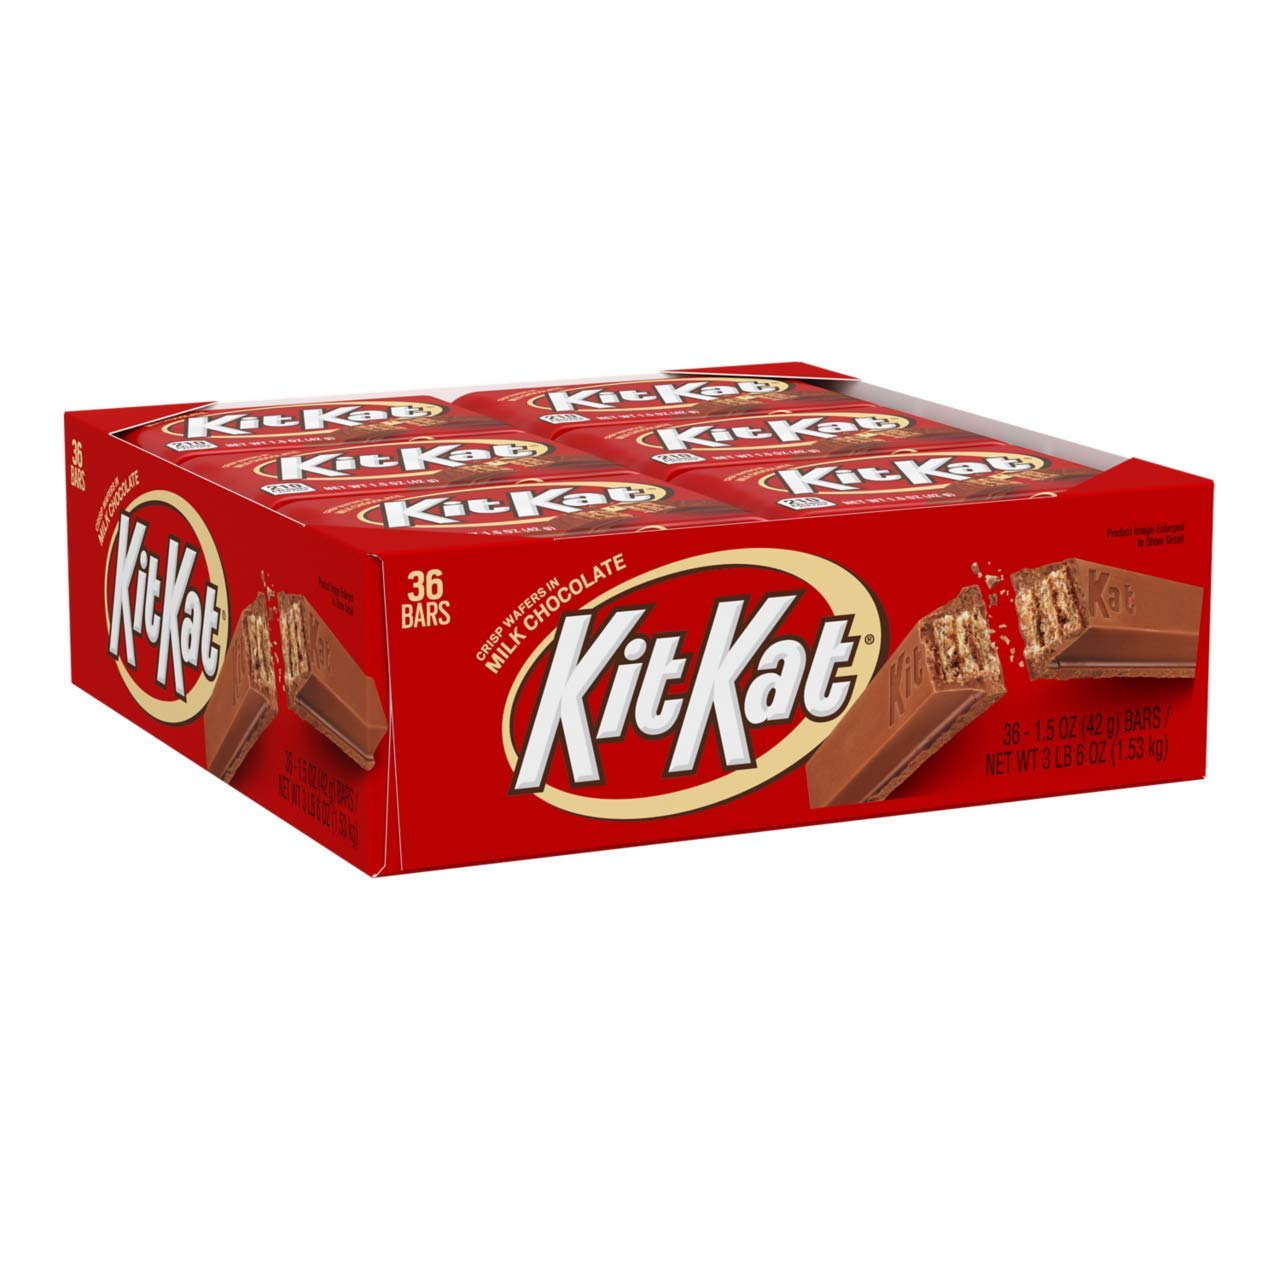 KIT KAT Candy Bar, Milk Chocolate Covered Crisp Wafers, 1.5 Ounce Bar (Pack of 36) by Kit Kat